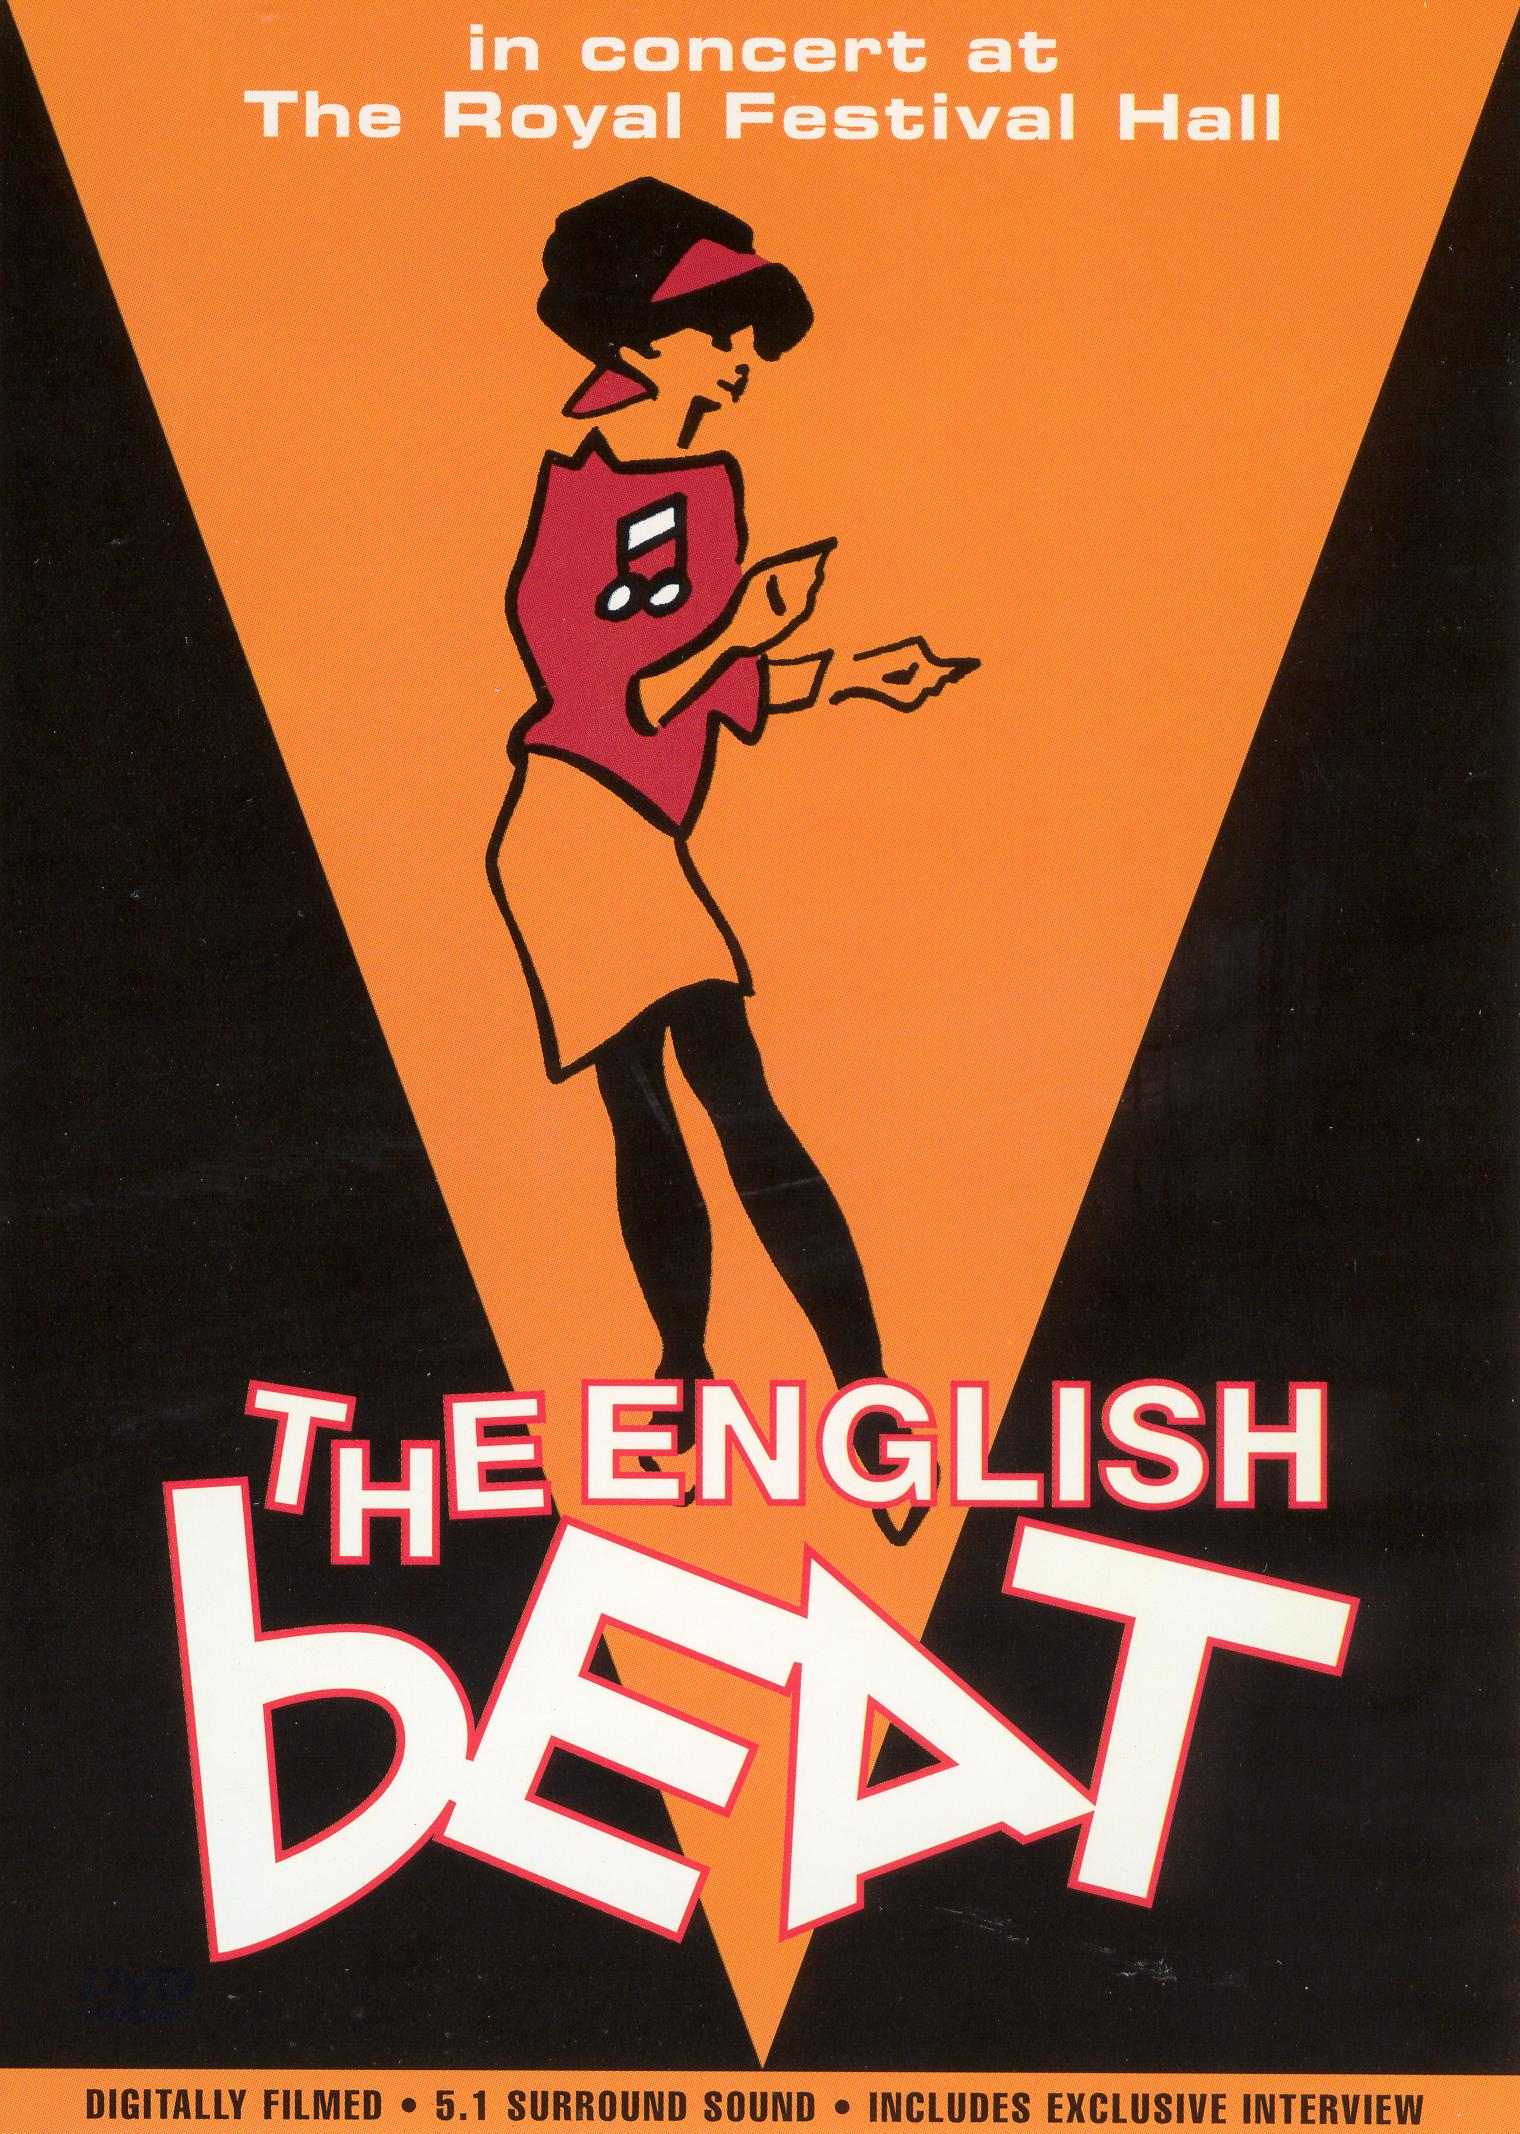 The English Beat: In Concert at the Royal Festival Hall